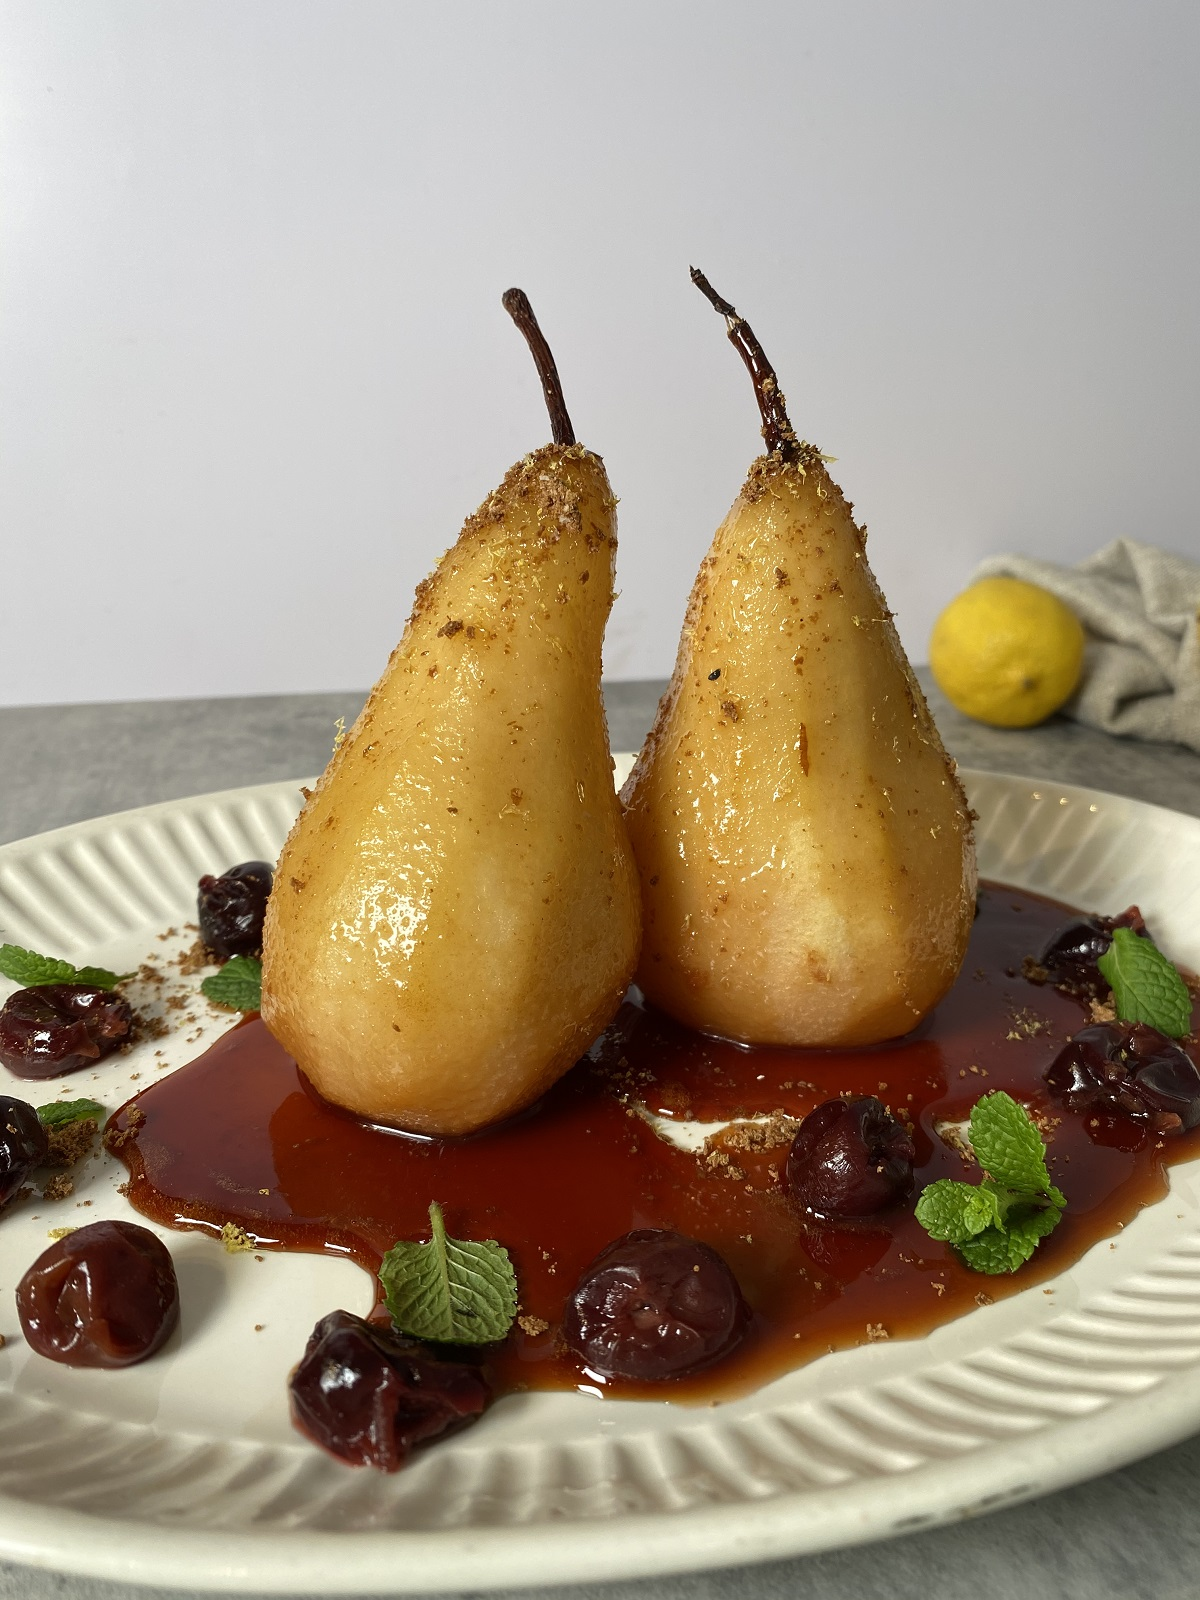 cooked pears and cherries on a white plate